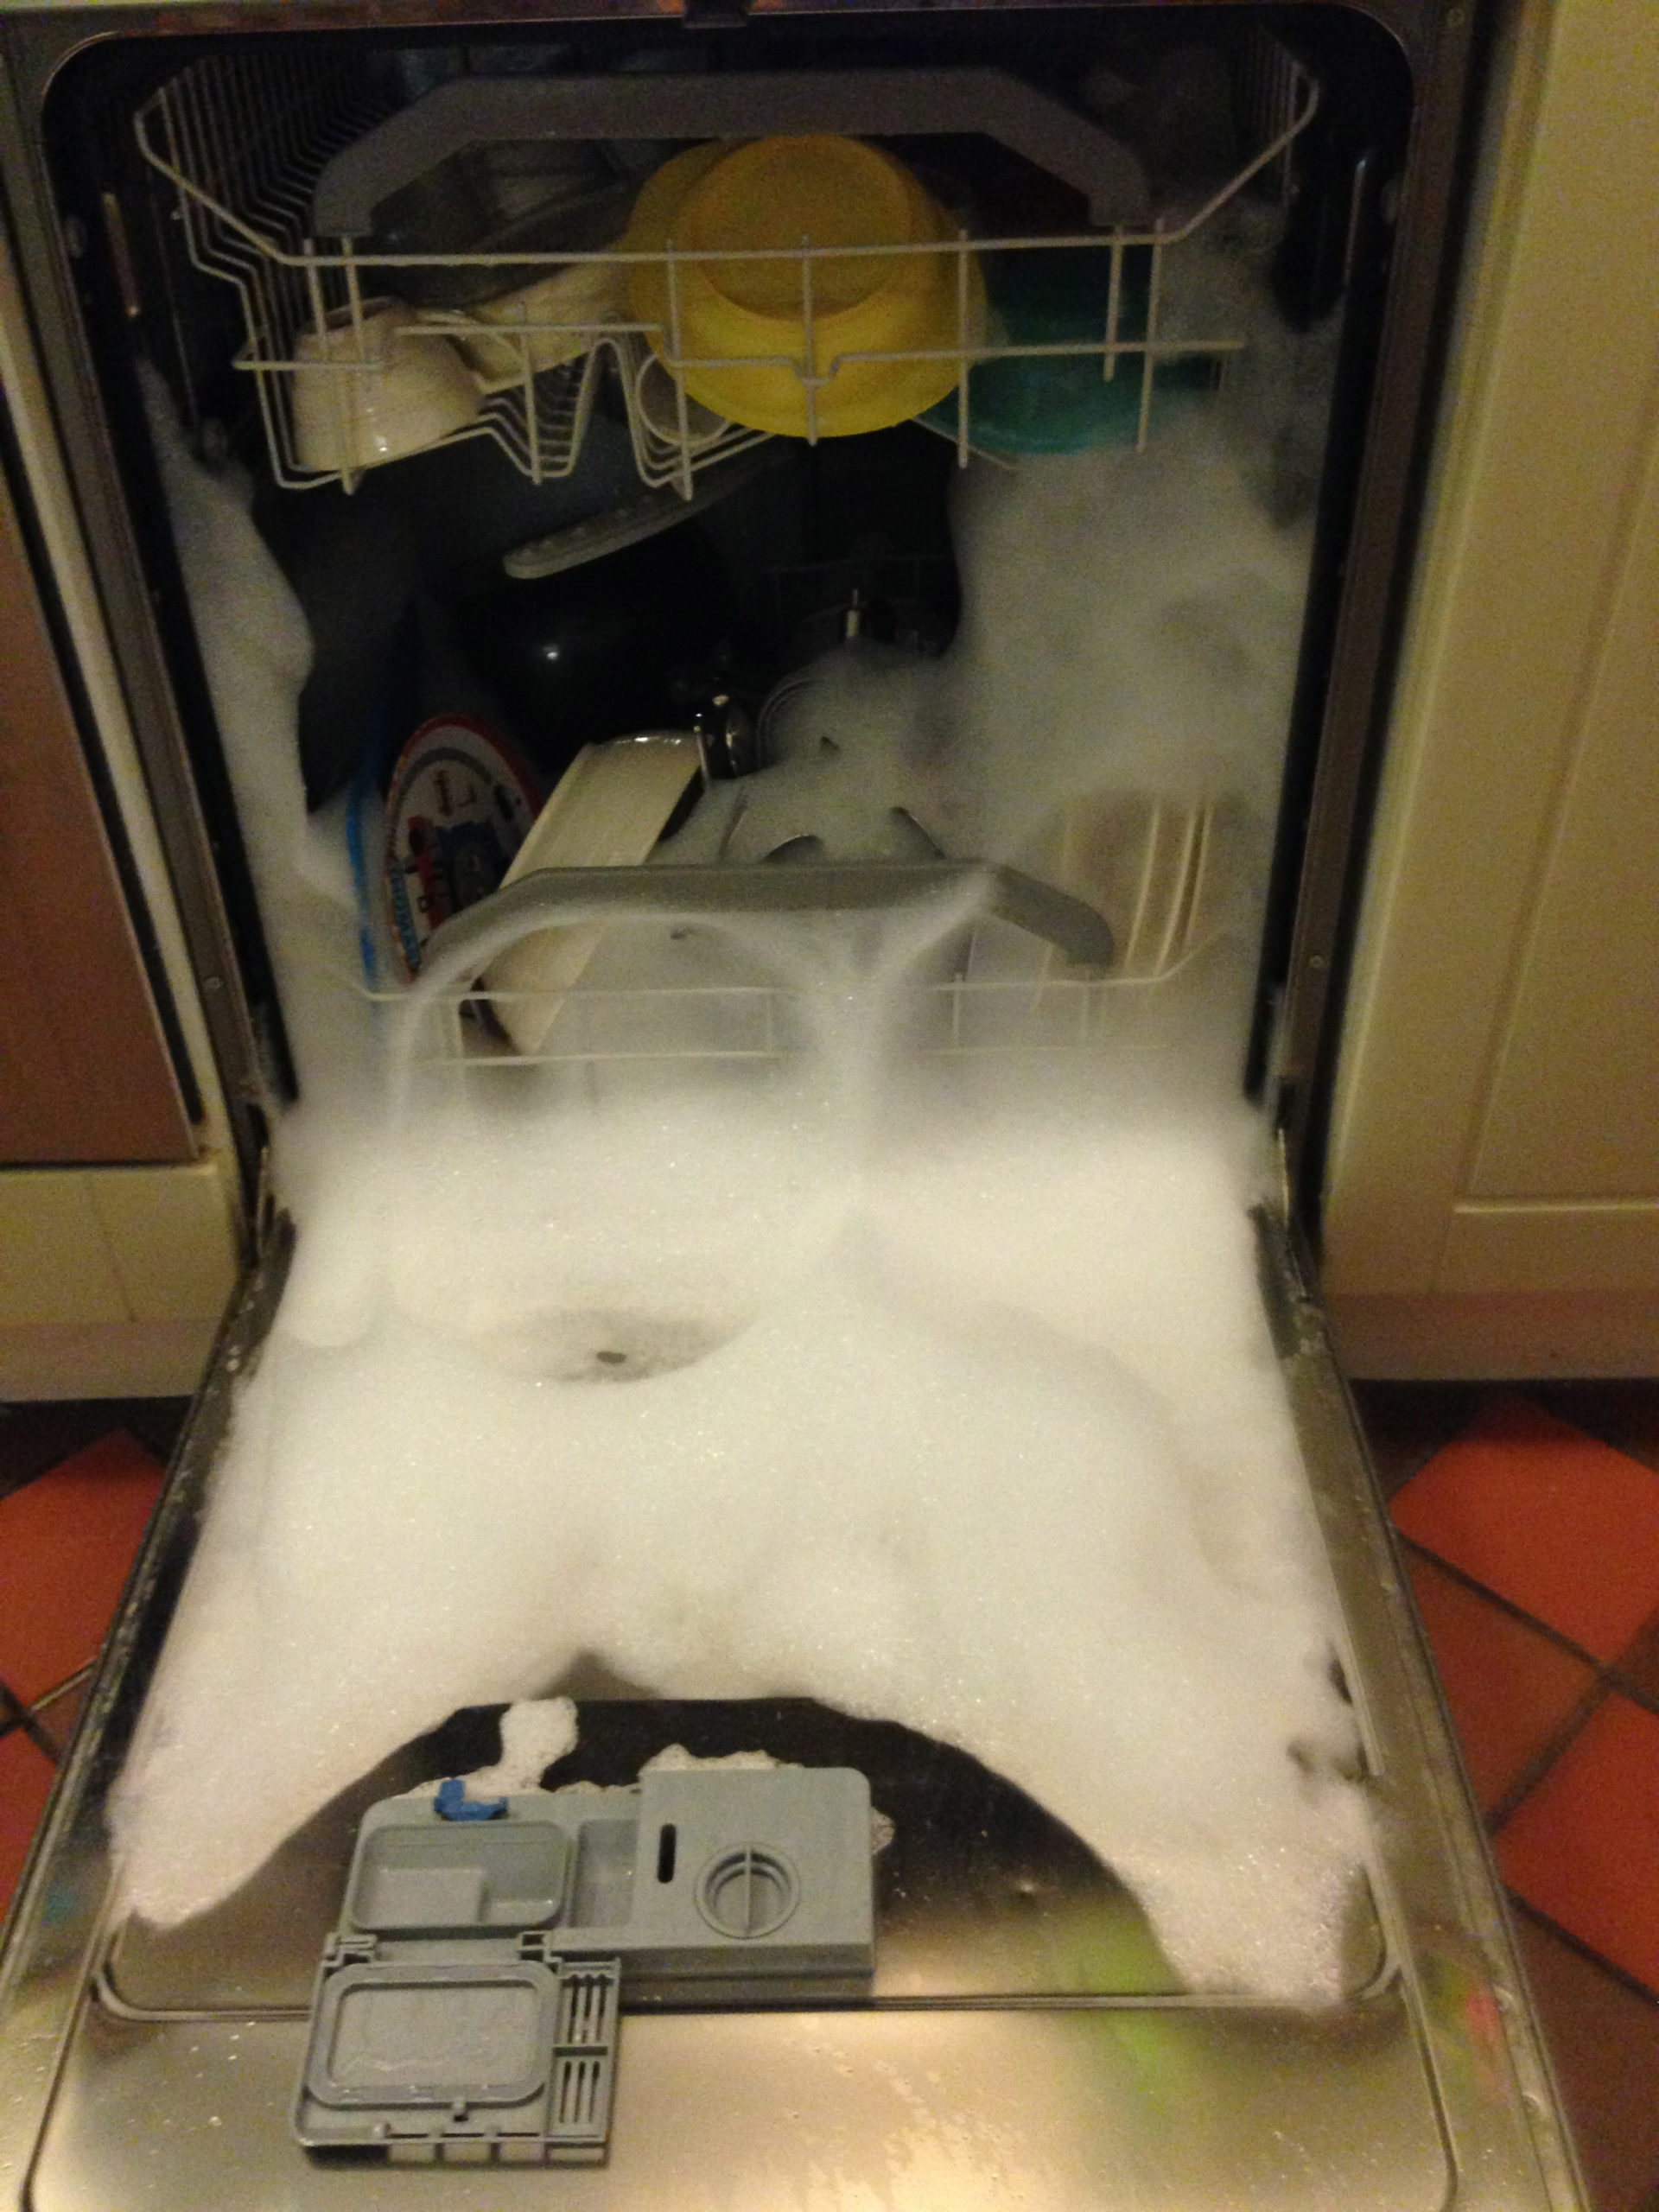 If you run out of dishwasher tablets, washing up liquid isn't the answer